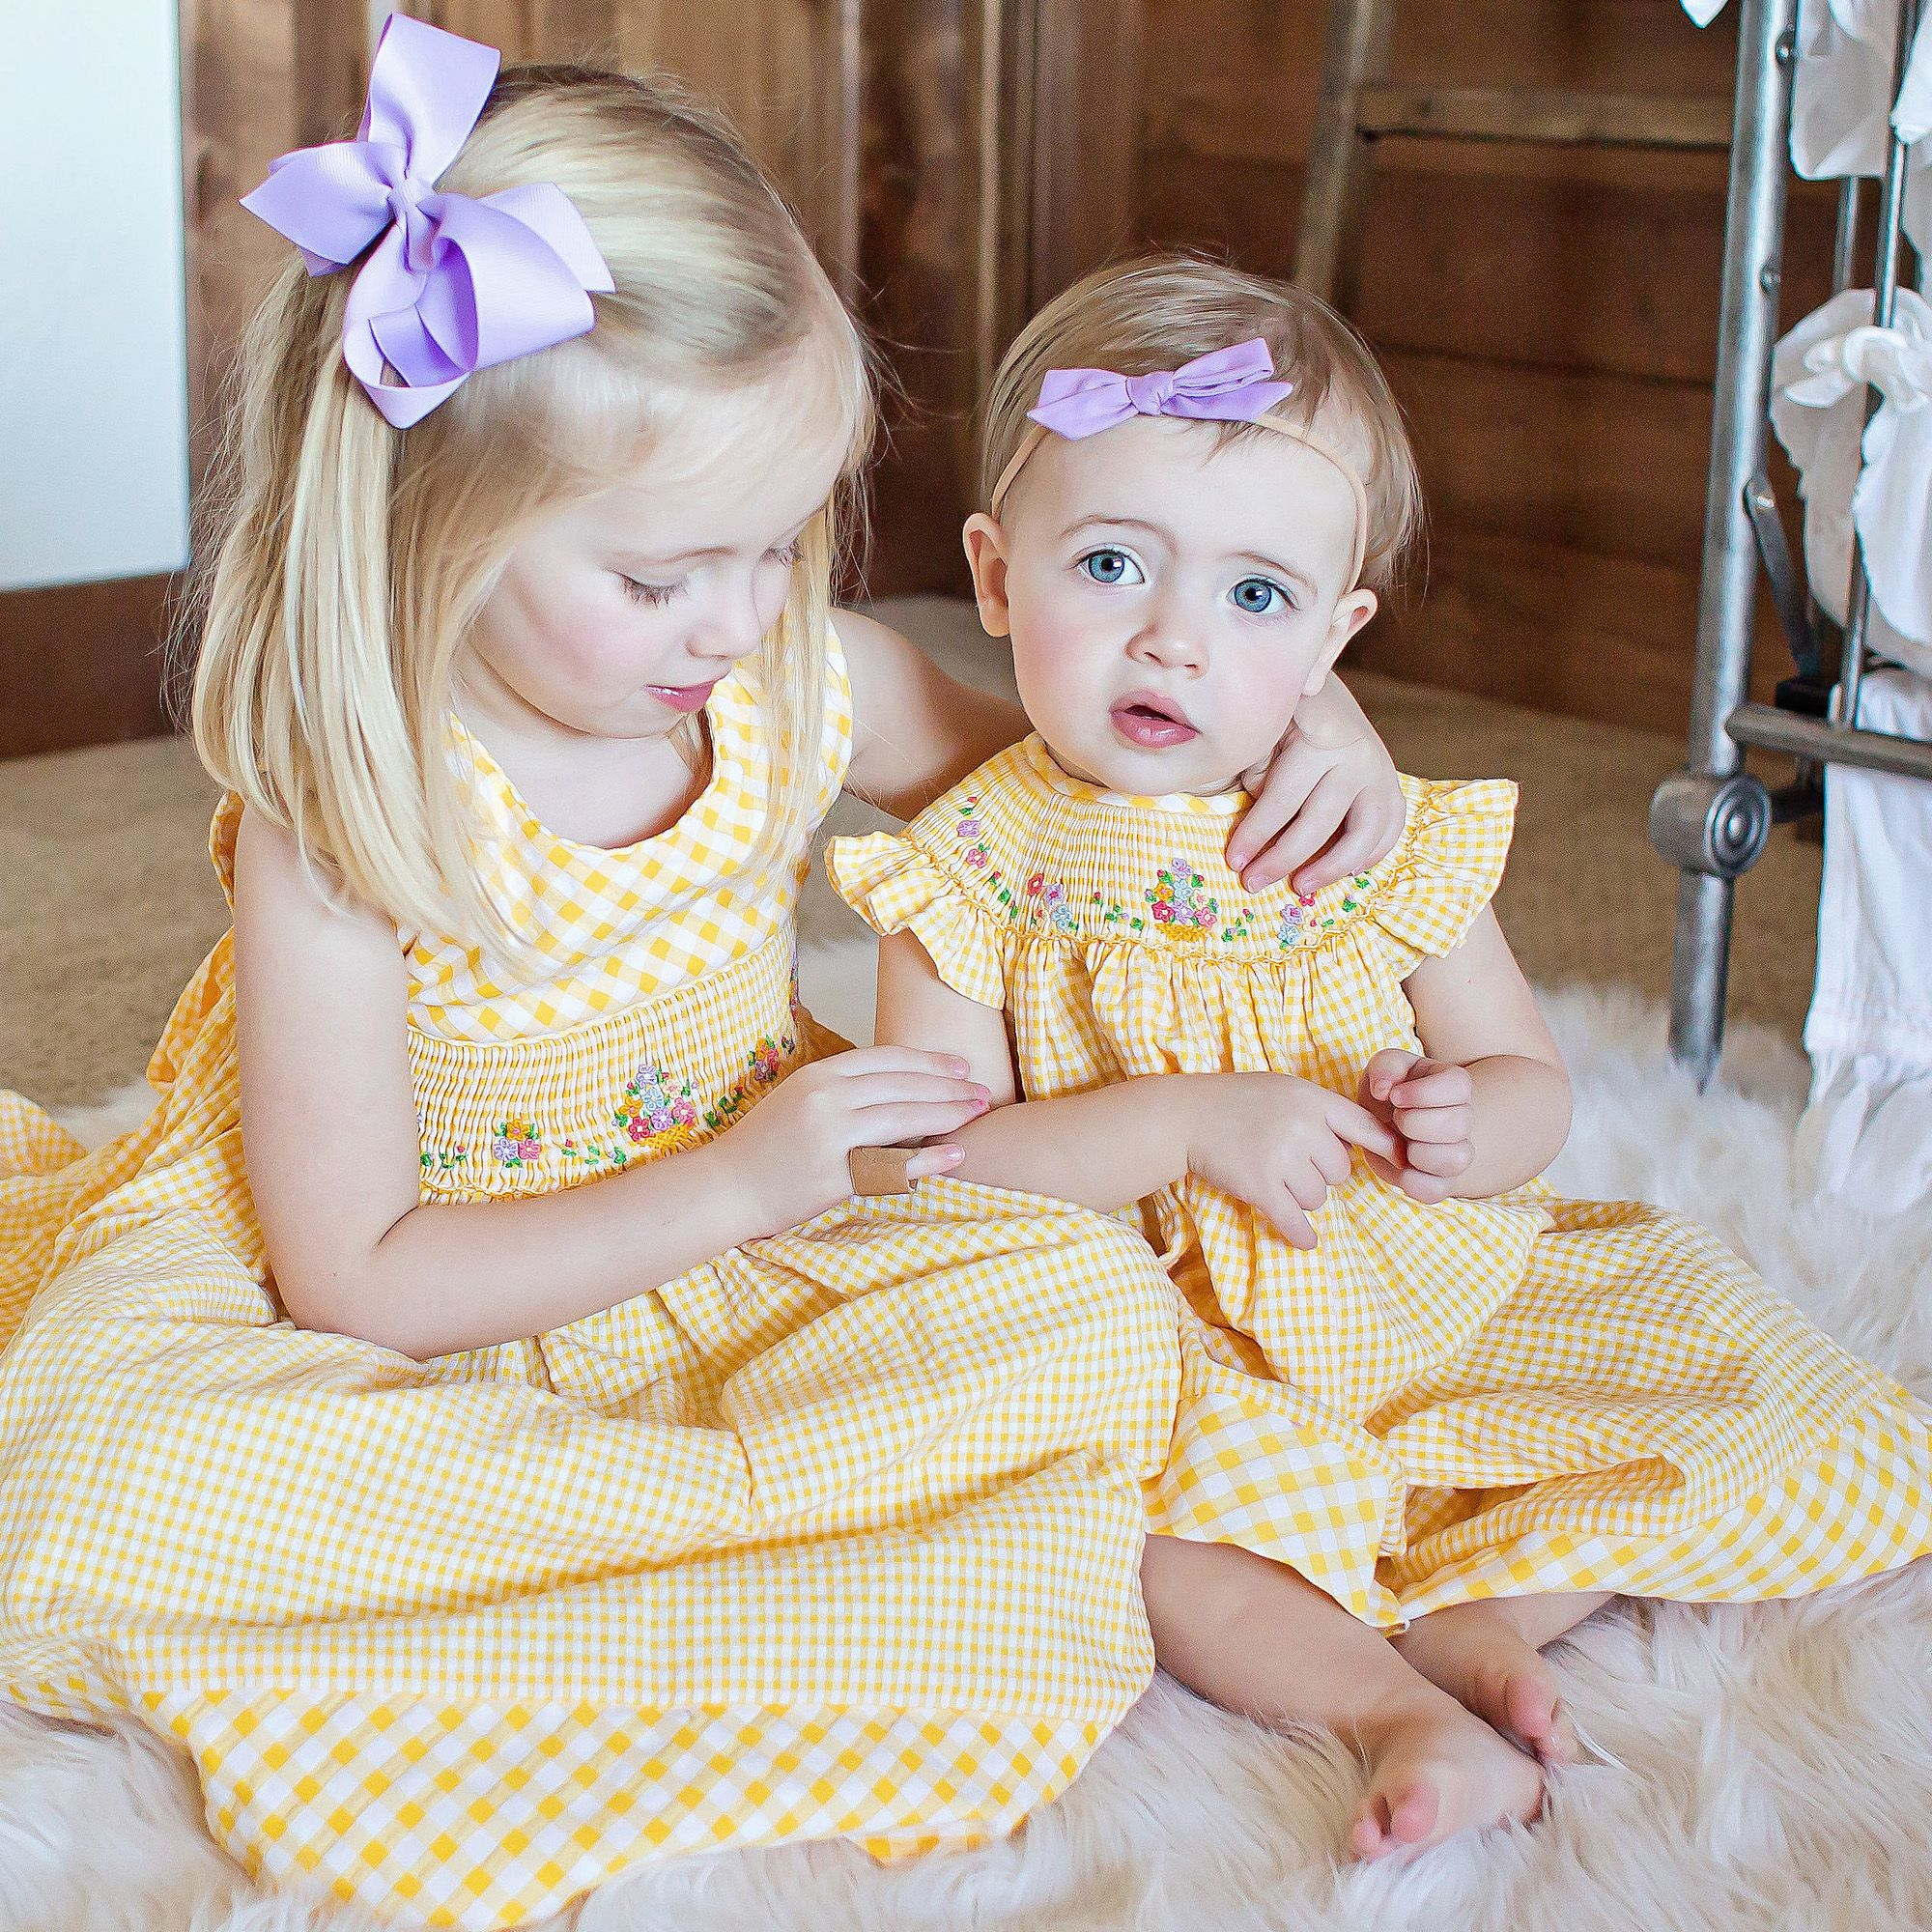 6df3bb204 Brighten up her summer wardrobe with these cute sister dresses from Luli &  Me. Shop via link in bio. #kidsfashion #sisterlove #babygirl #fahion ...